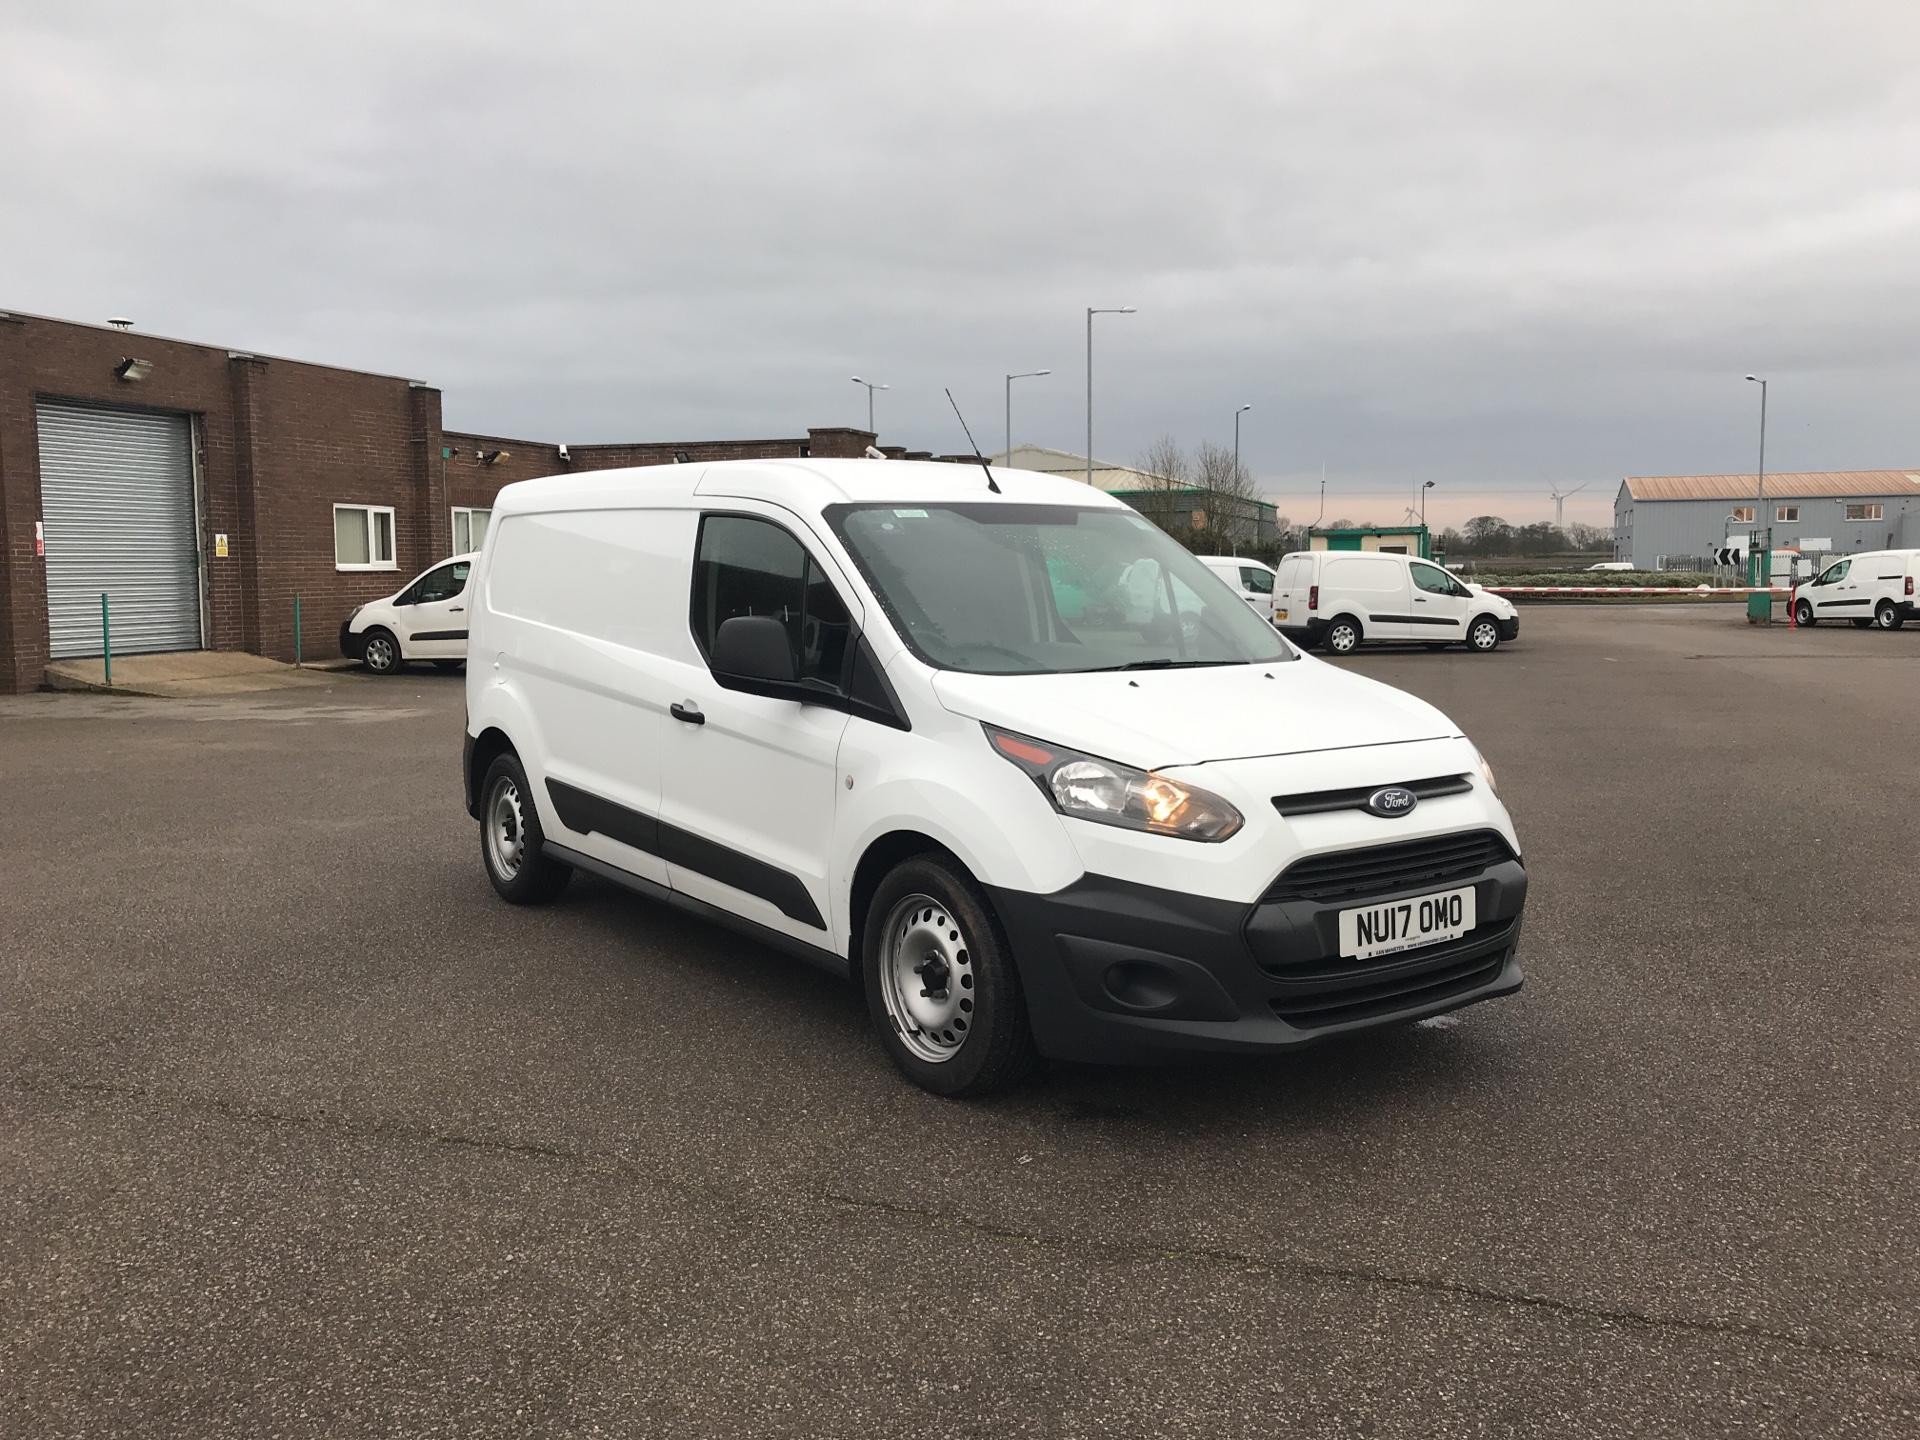 2017 Ford Transit Connect 210 L2 DIESEL 1.5 TDCI 75PS VAN EURO 6 (NU17OMO)